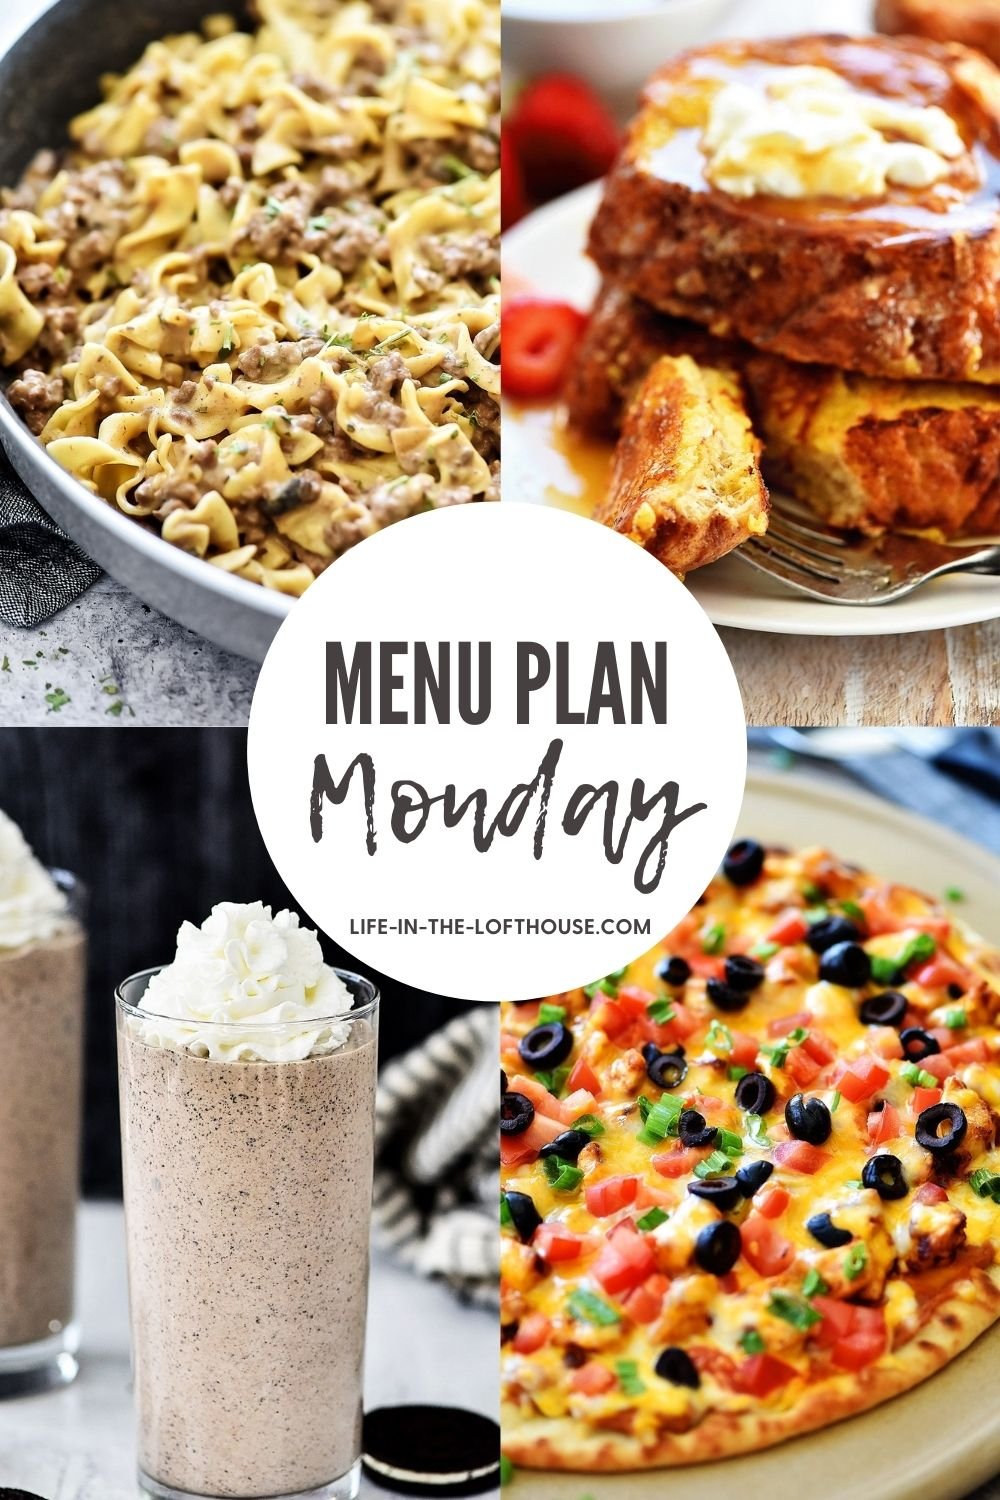 Menu Plan Monday is a list of recipes with six dinner ideas and one dessert.